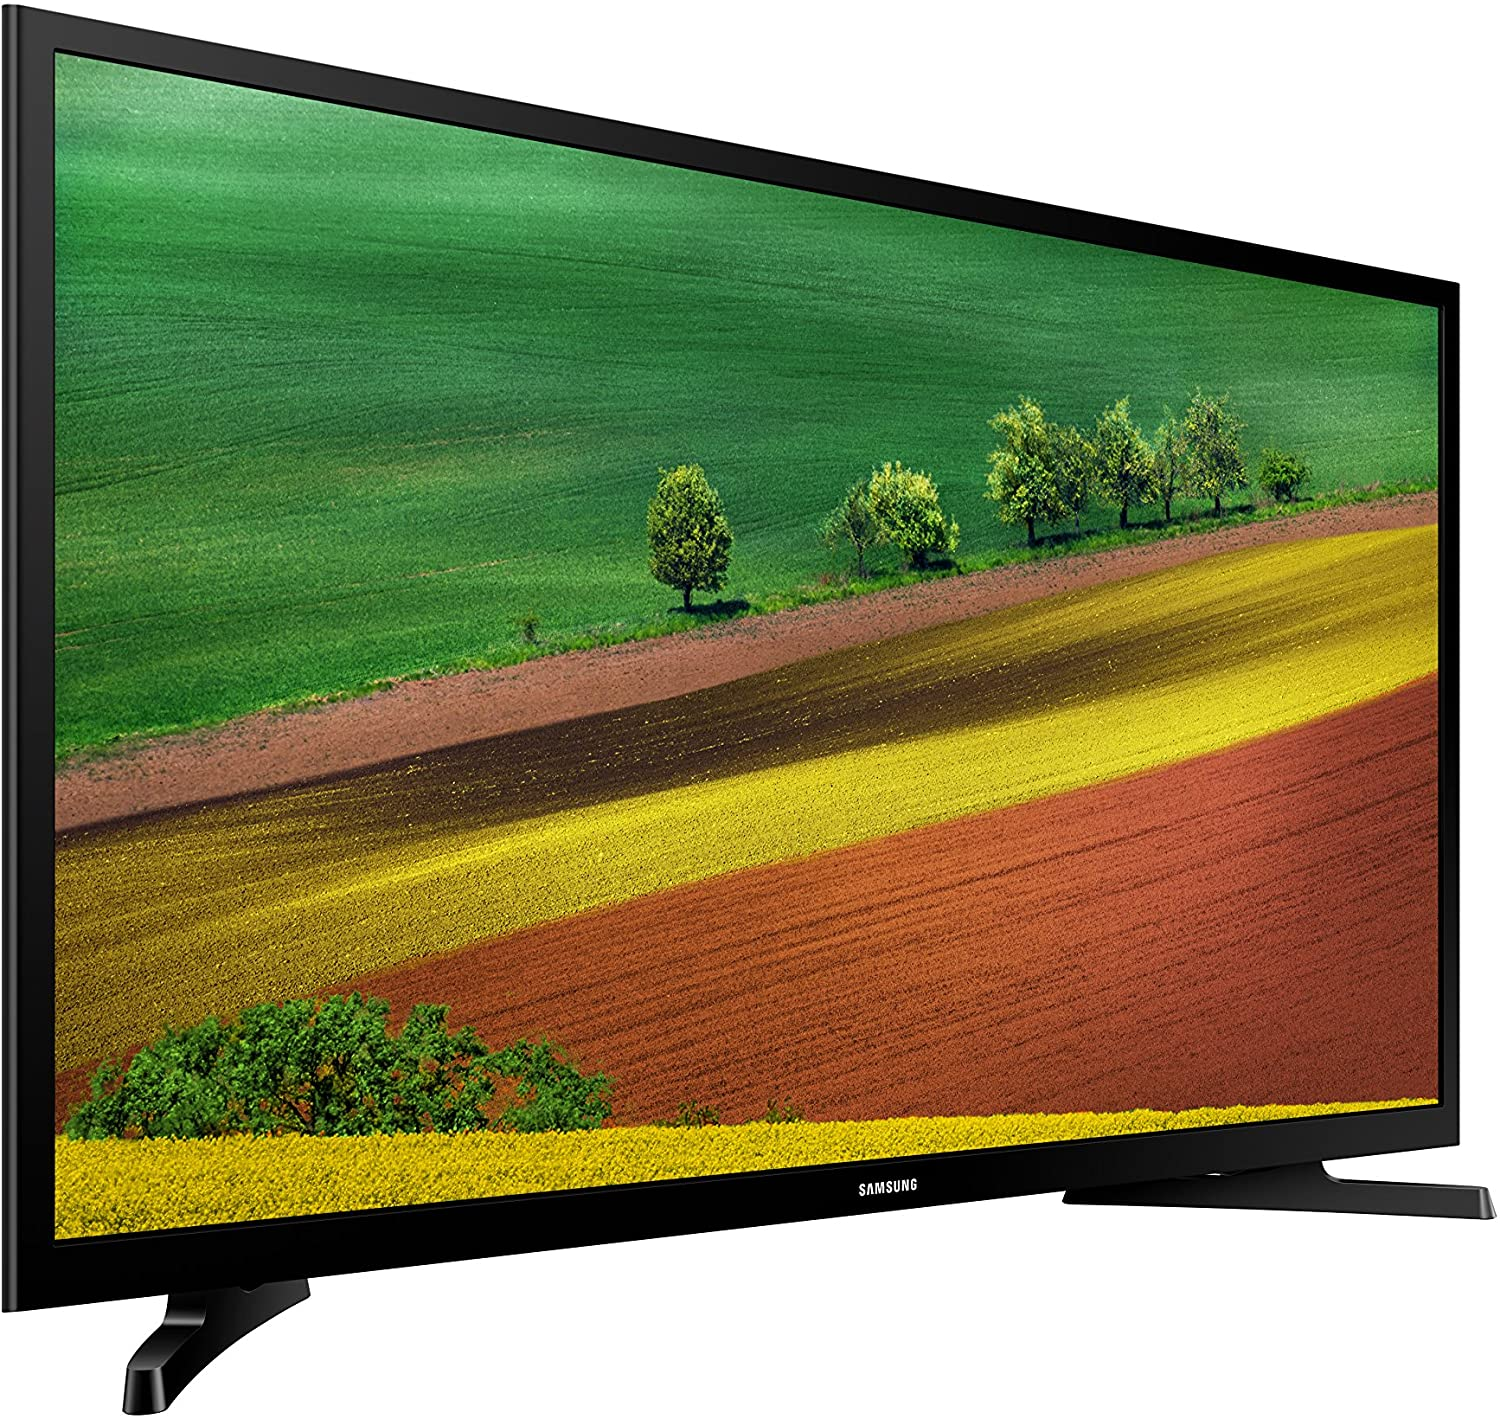 Samsung UN32M4500BFXZA review